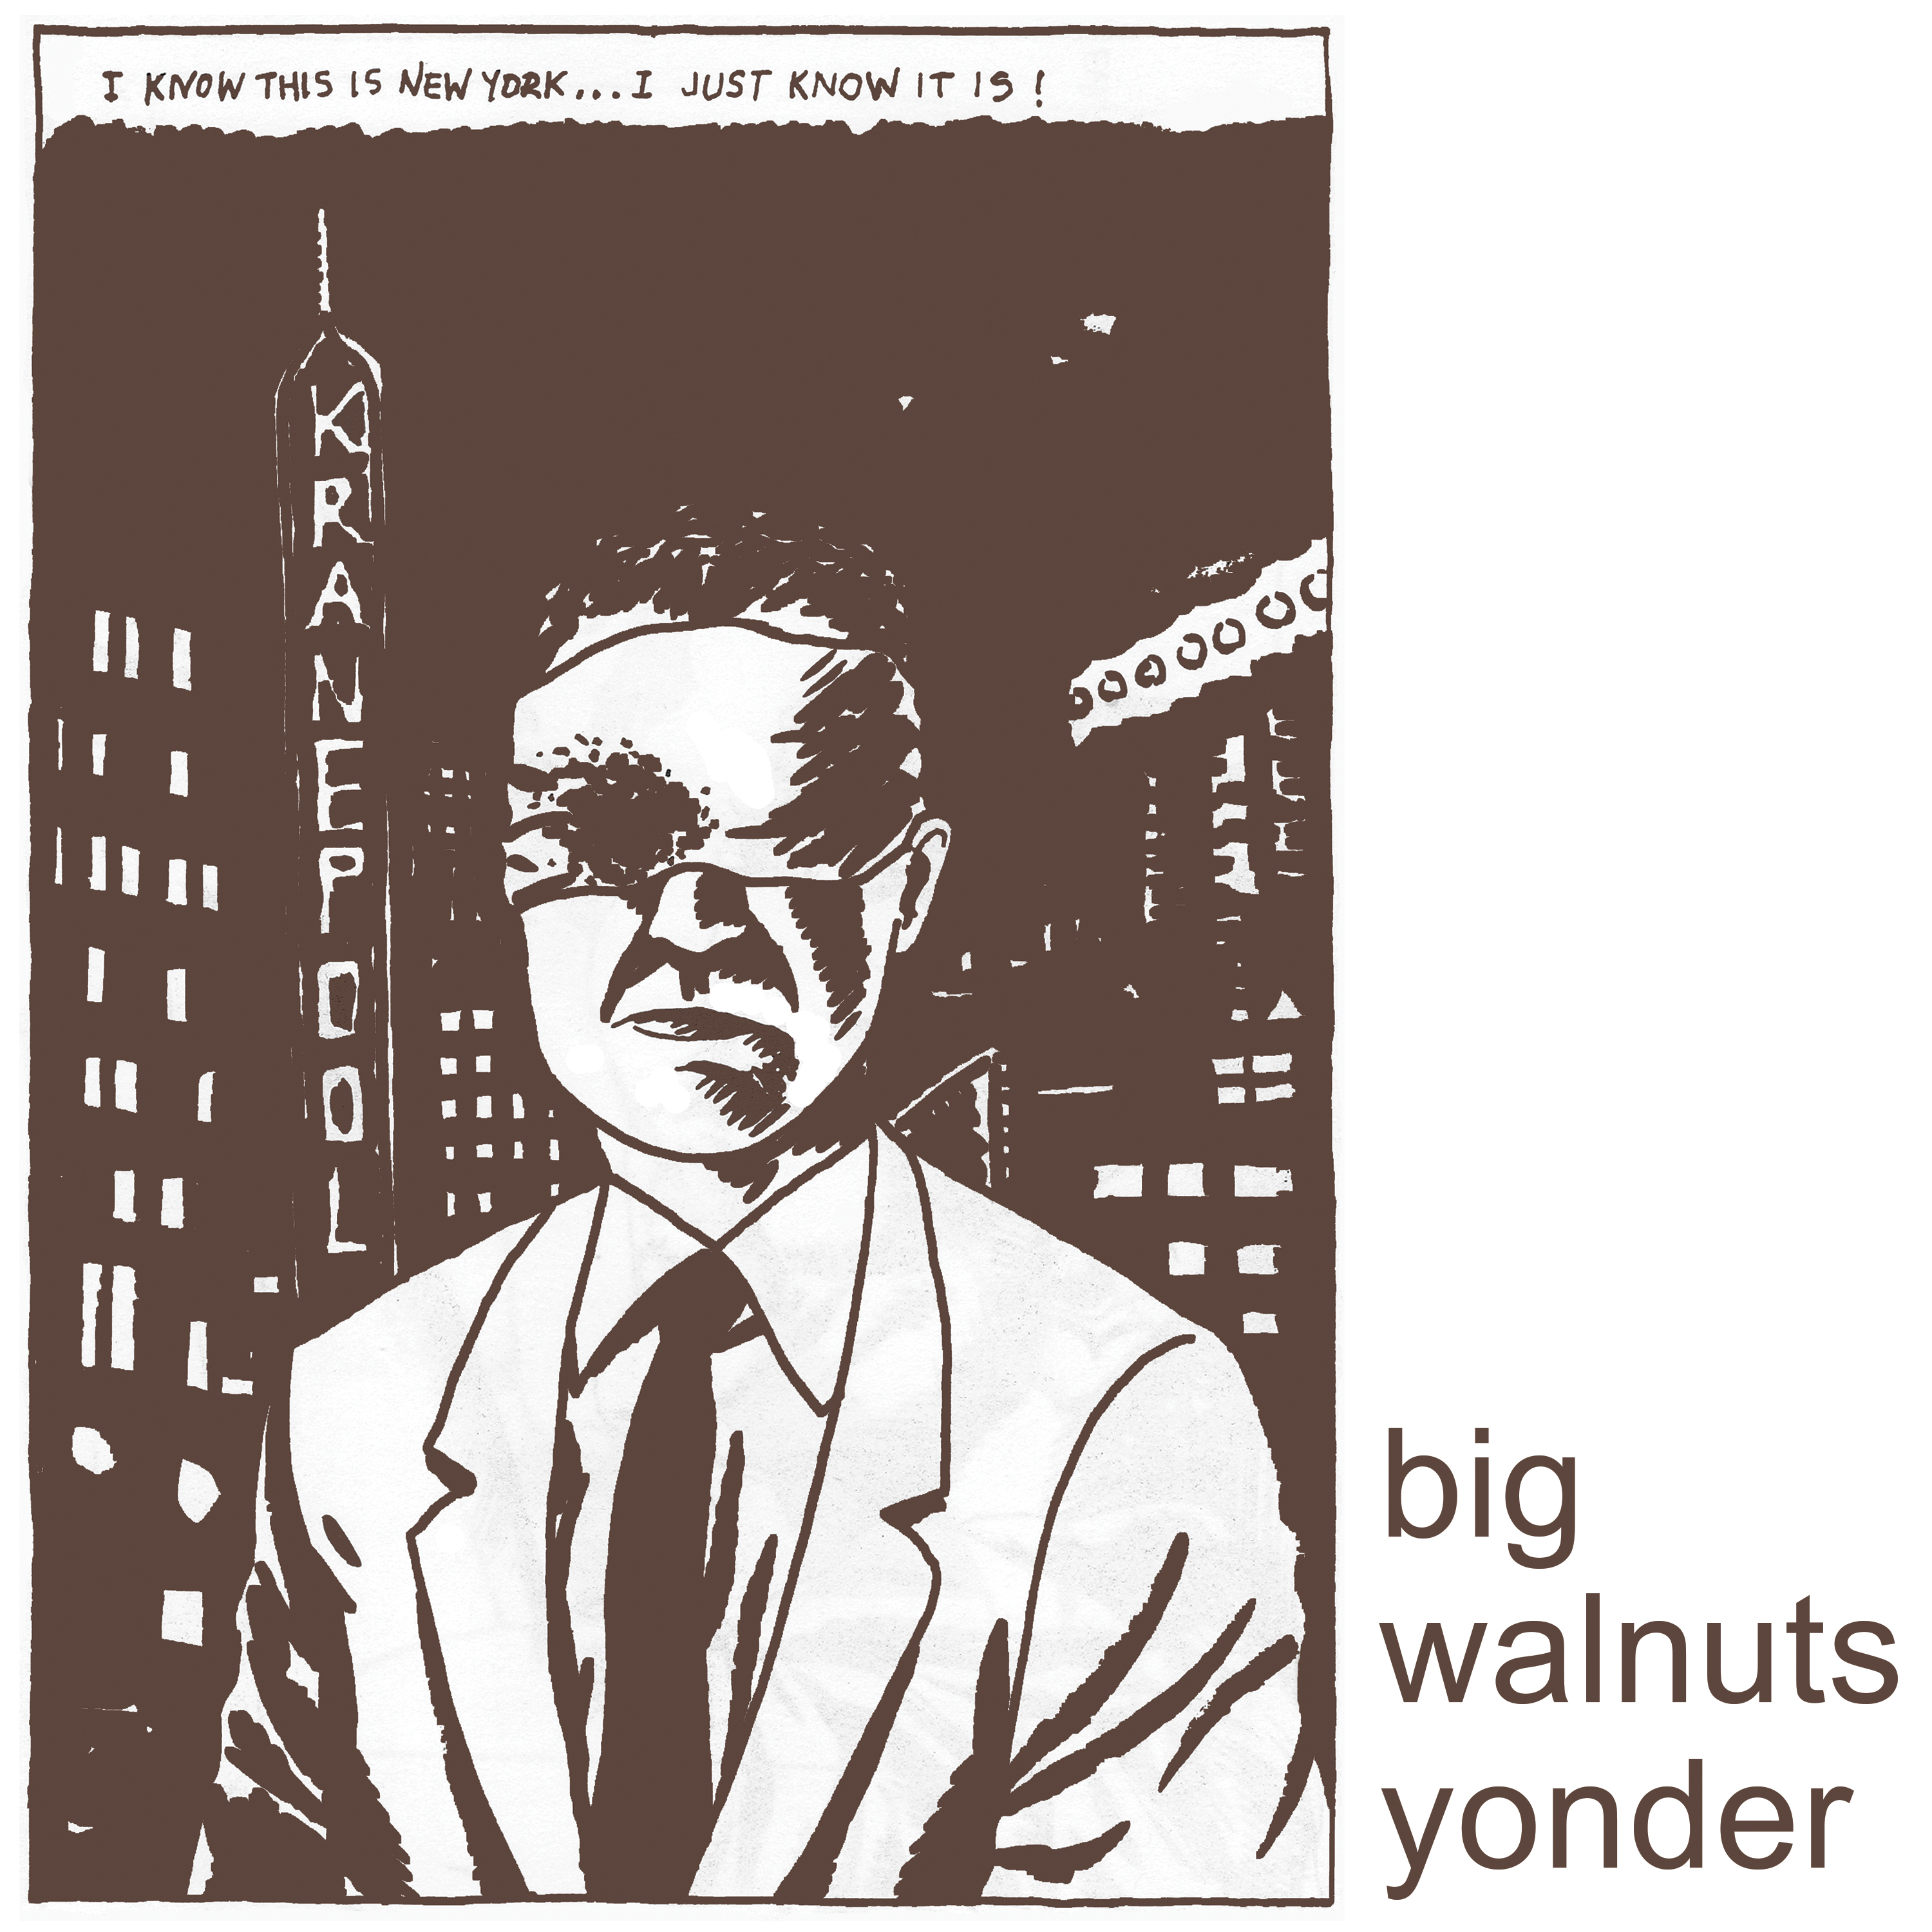 big walnuts yonder 3000x3000 300 dpi Members of Minutemen, Wilco, Deerhoof, and Tera Melos form new band called Big Walnuts Yonder